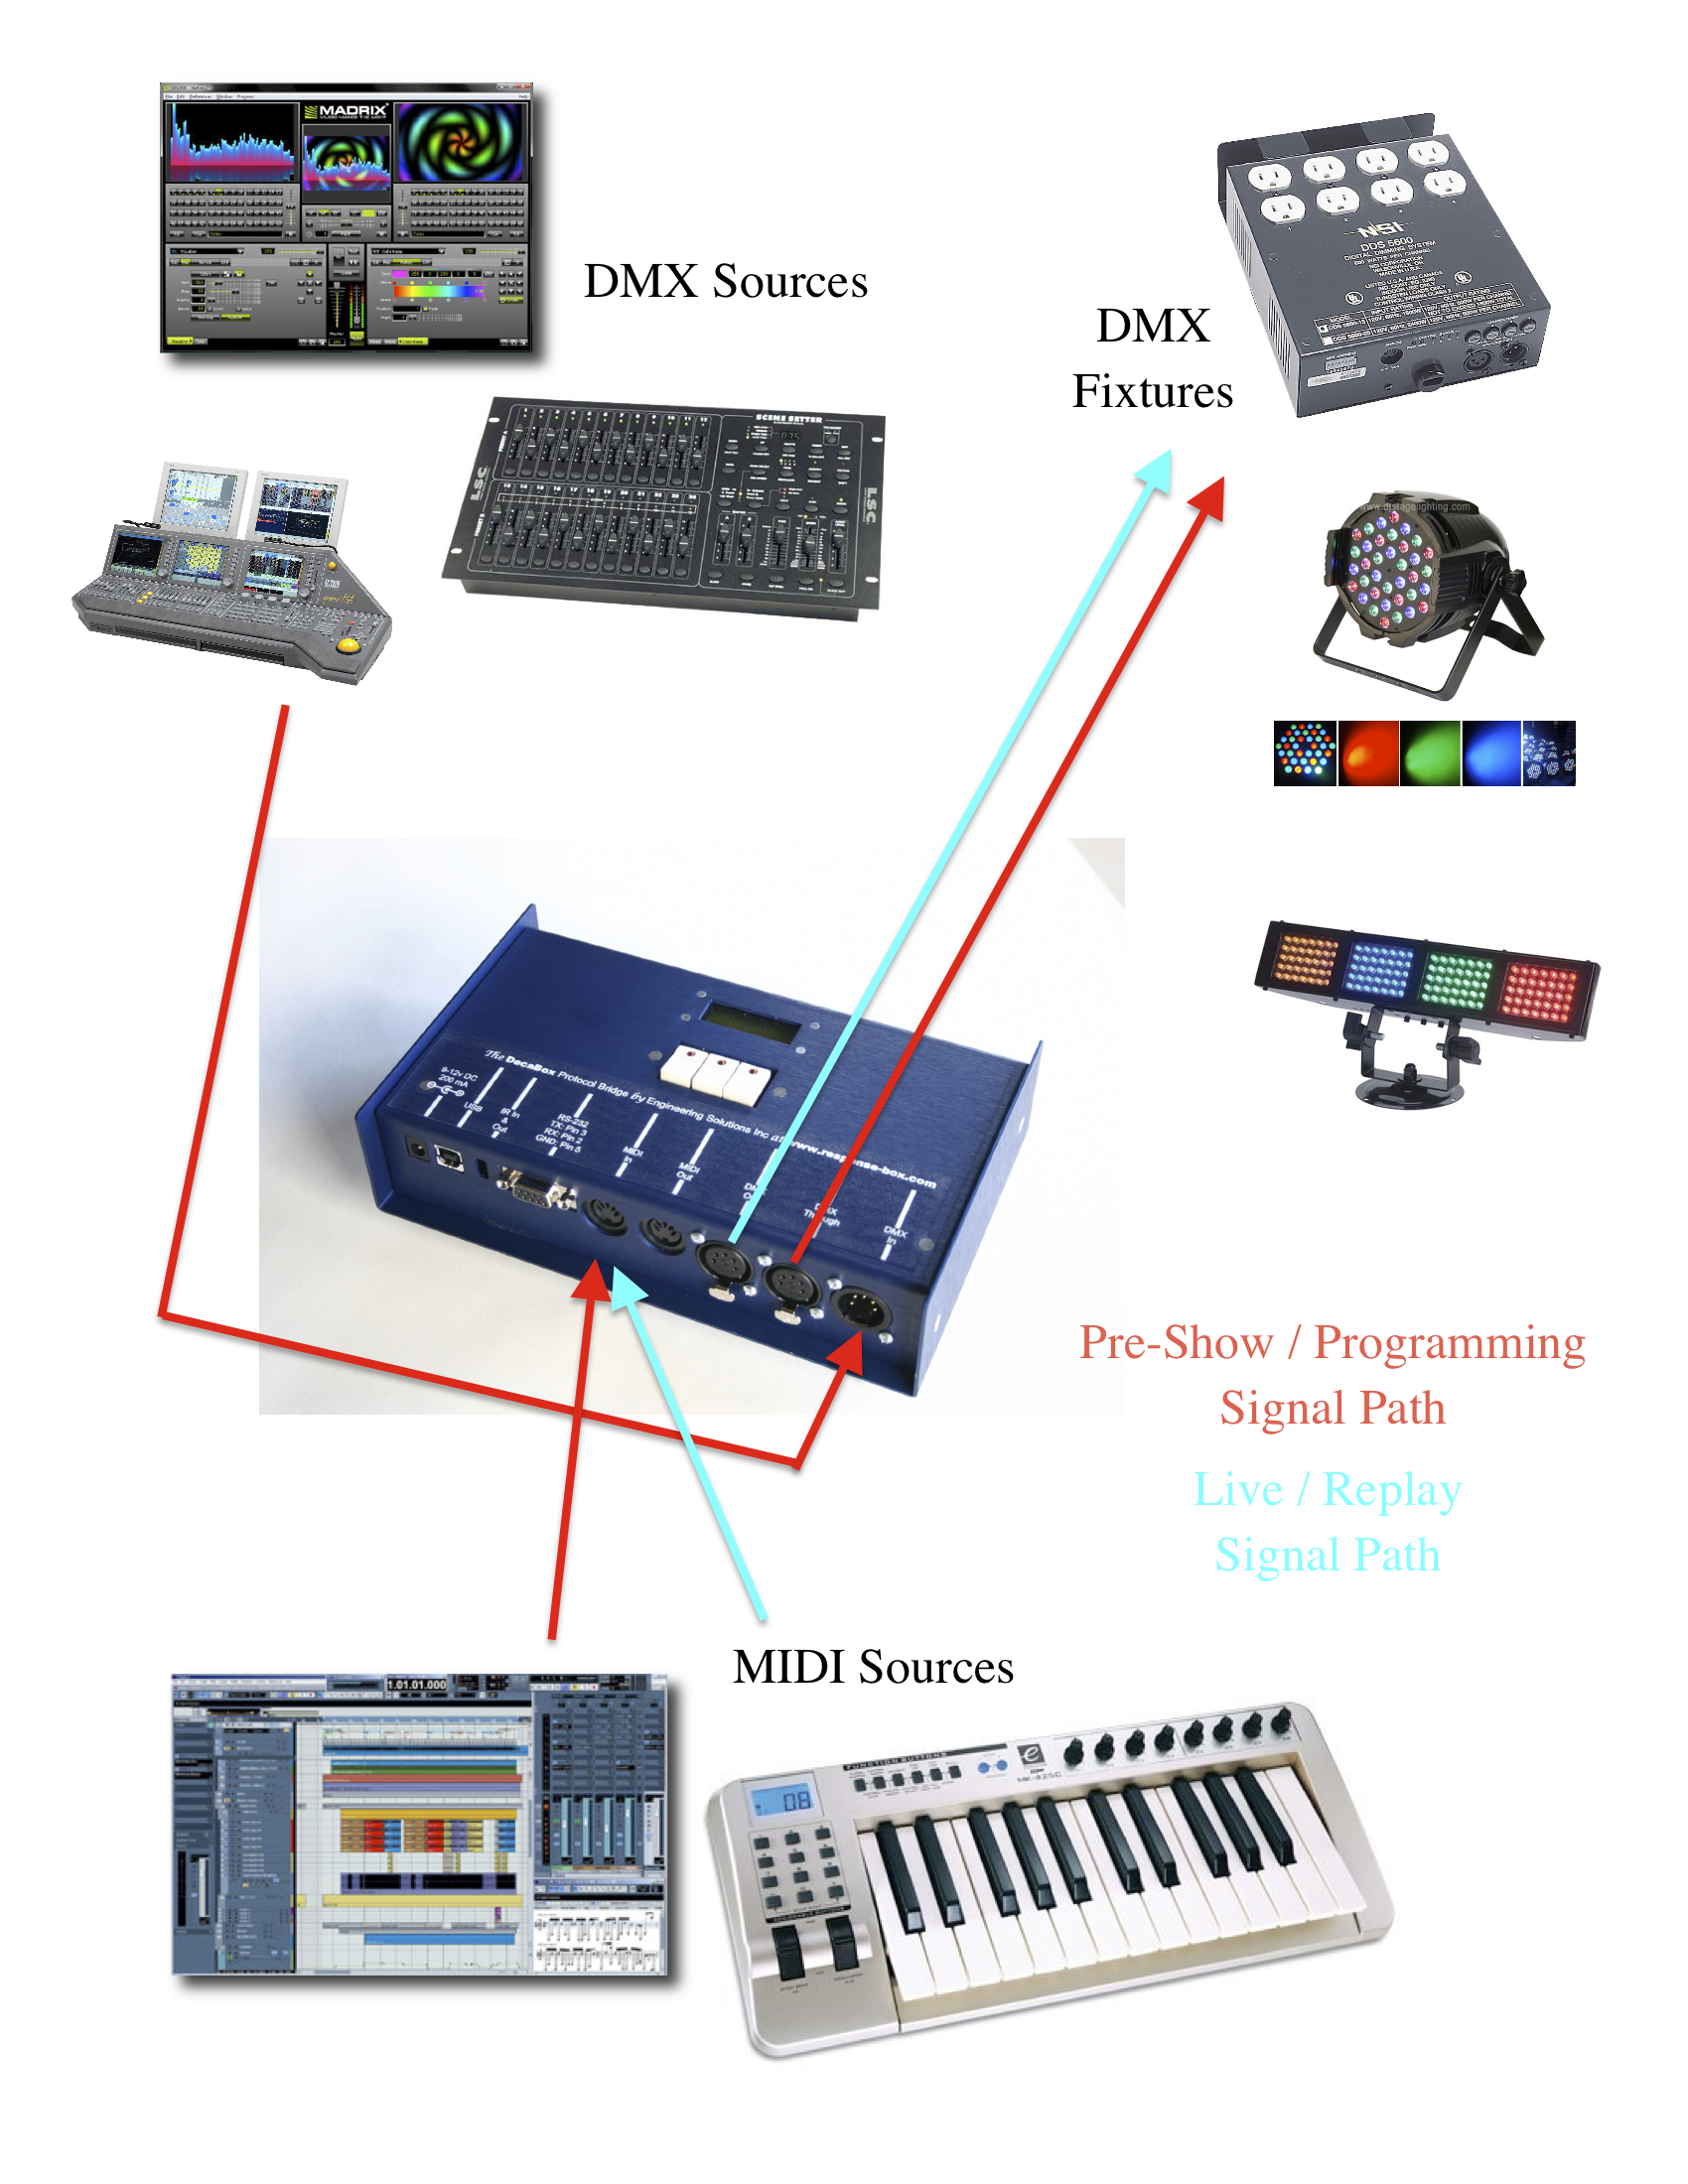 Dmx Engineering Solutions Inc Page 3 Daisy Chain Wiring Diagram Signal Path Programming Midi Playback